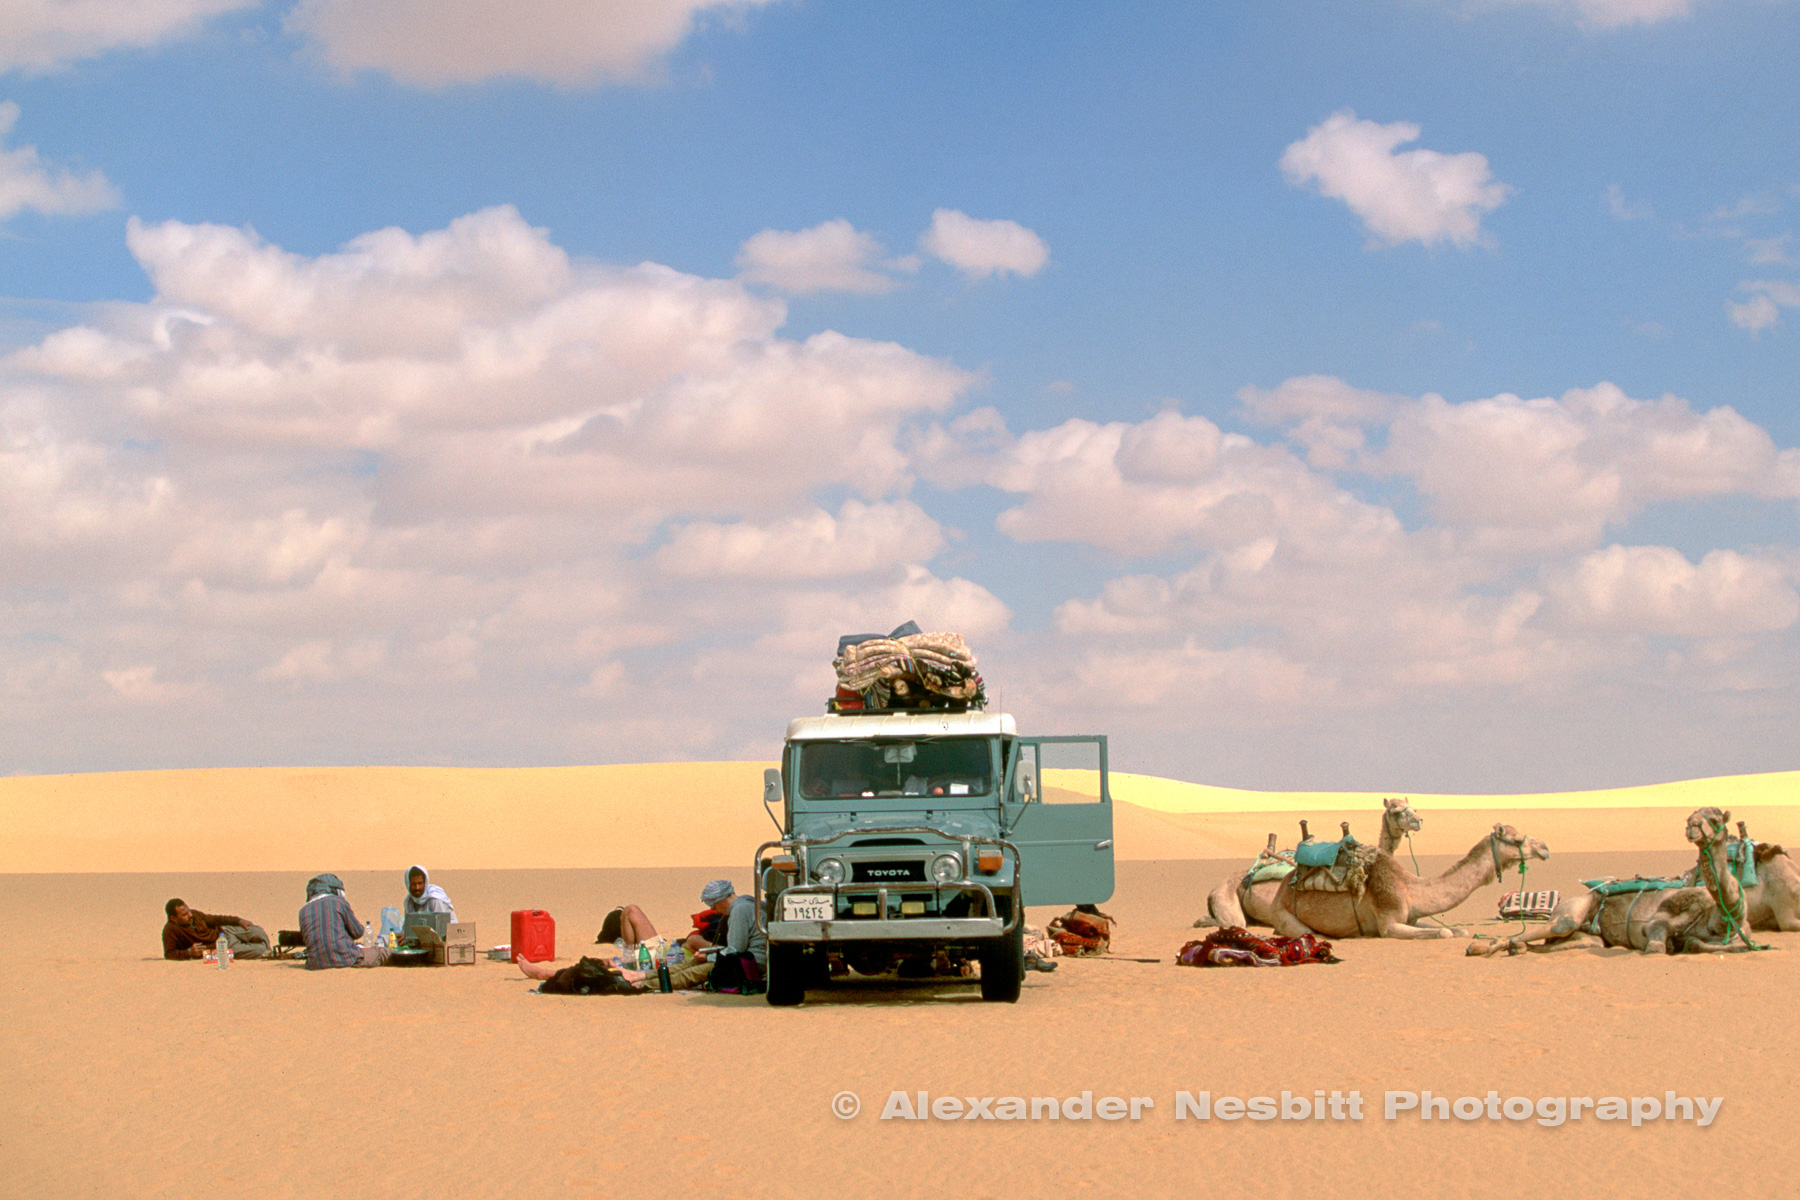 Egypt, 2000 - Egyptian western desert.  Lunch time rendezvous with the supply vehicle, an old FJ40 Landcruiser, midway through a Camel trek  across the sand sea desert between Farafra and Dakhla Oasis.